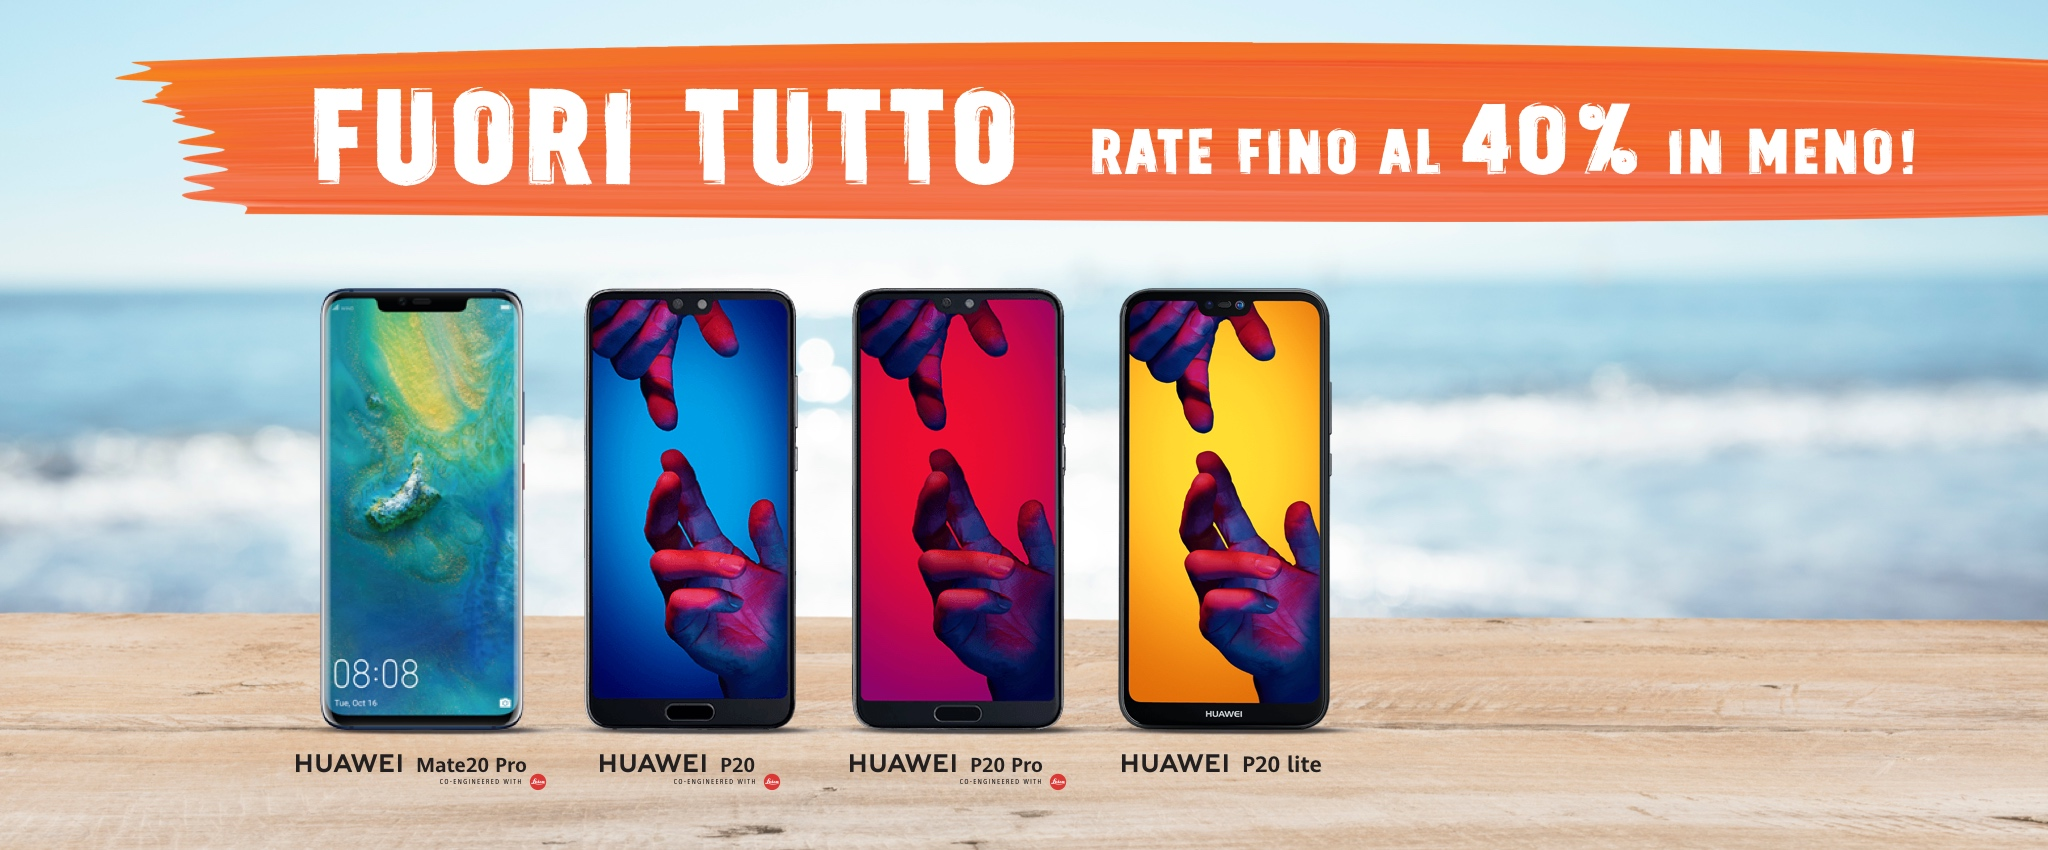 Huawei ti regala l'estate